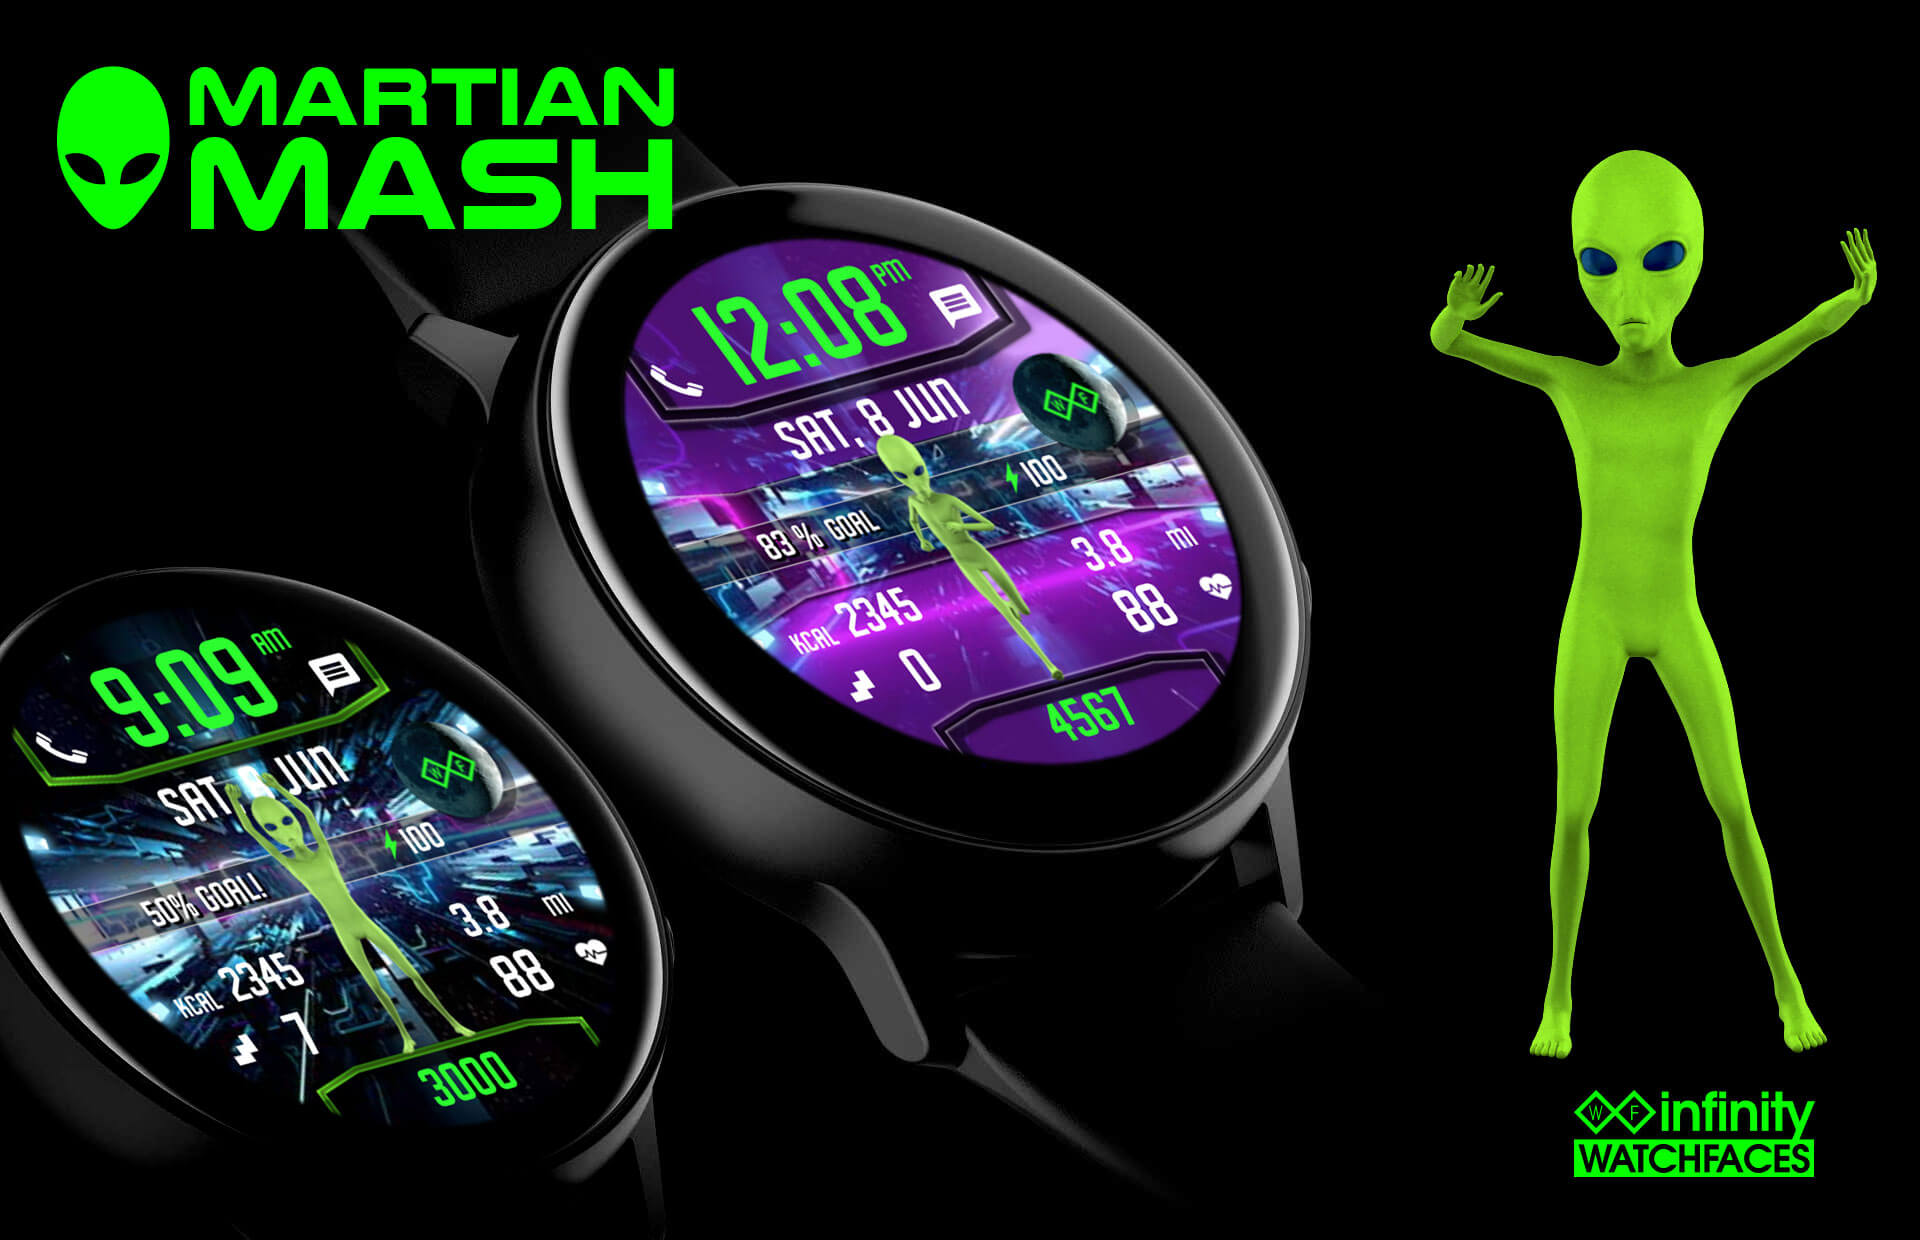 Martian Mash Infinity Watchfaces